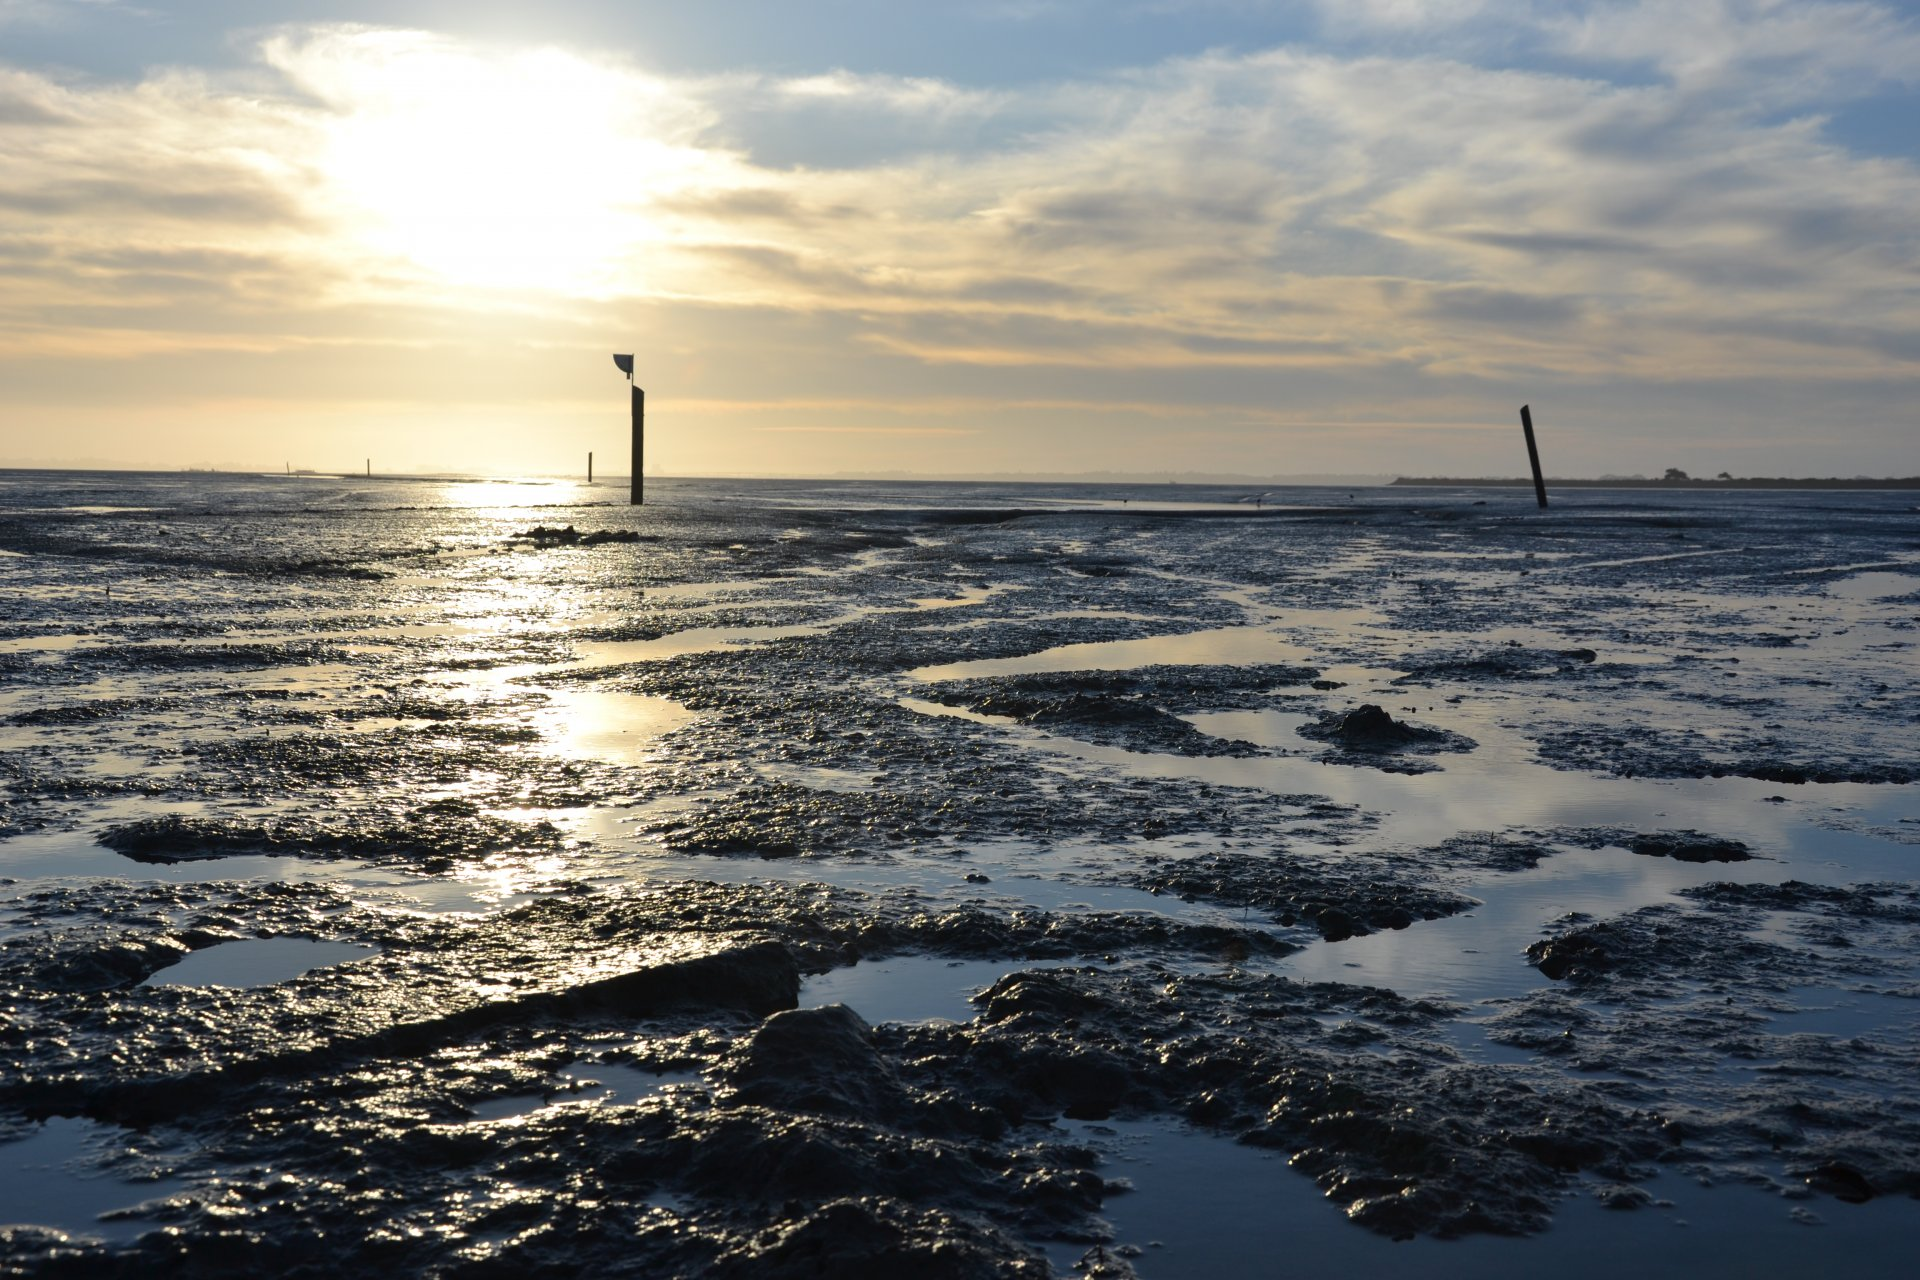 The evening sun reflects of dioxin contaminated mud at low tide on Dec. 1 at the Arcata Bay shoreline | Photo by Jen Kelly